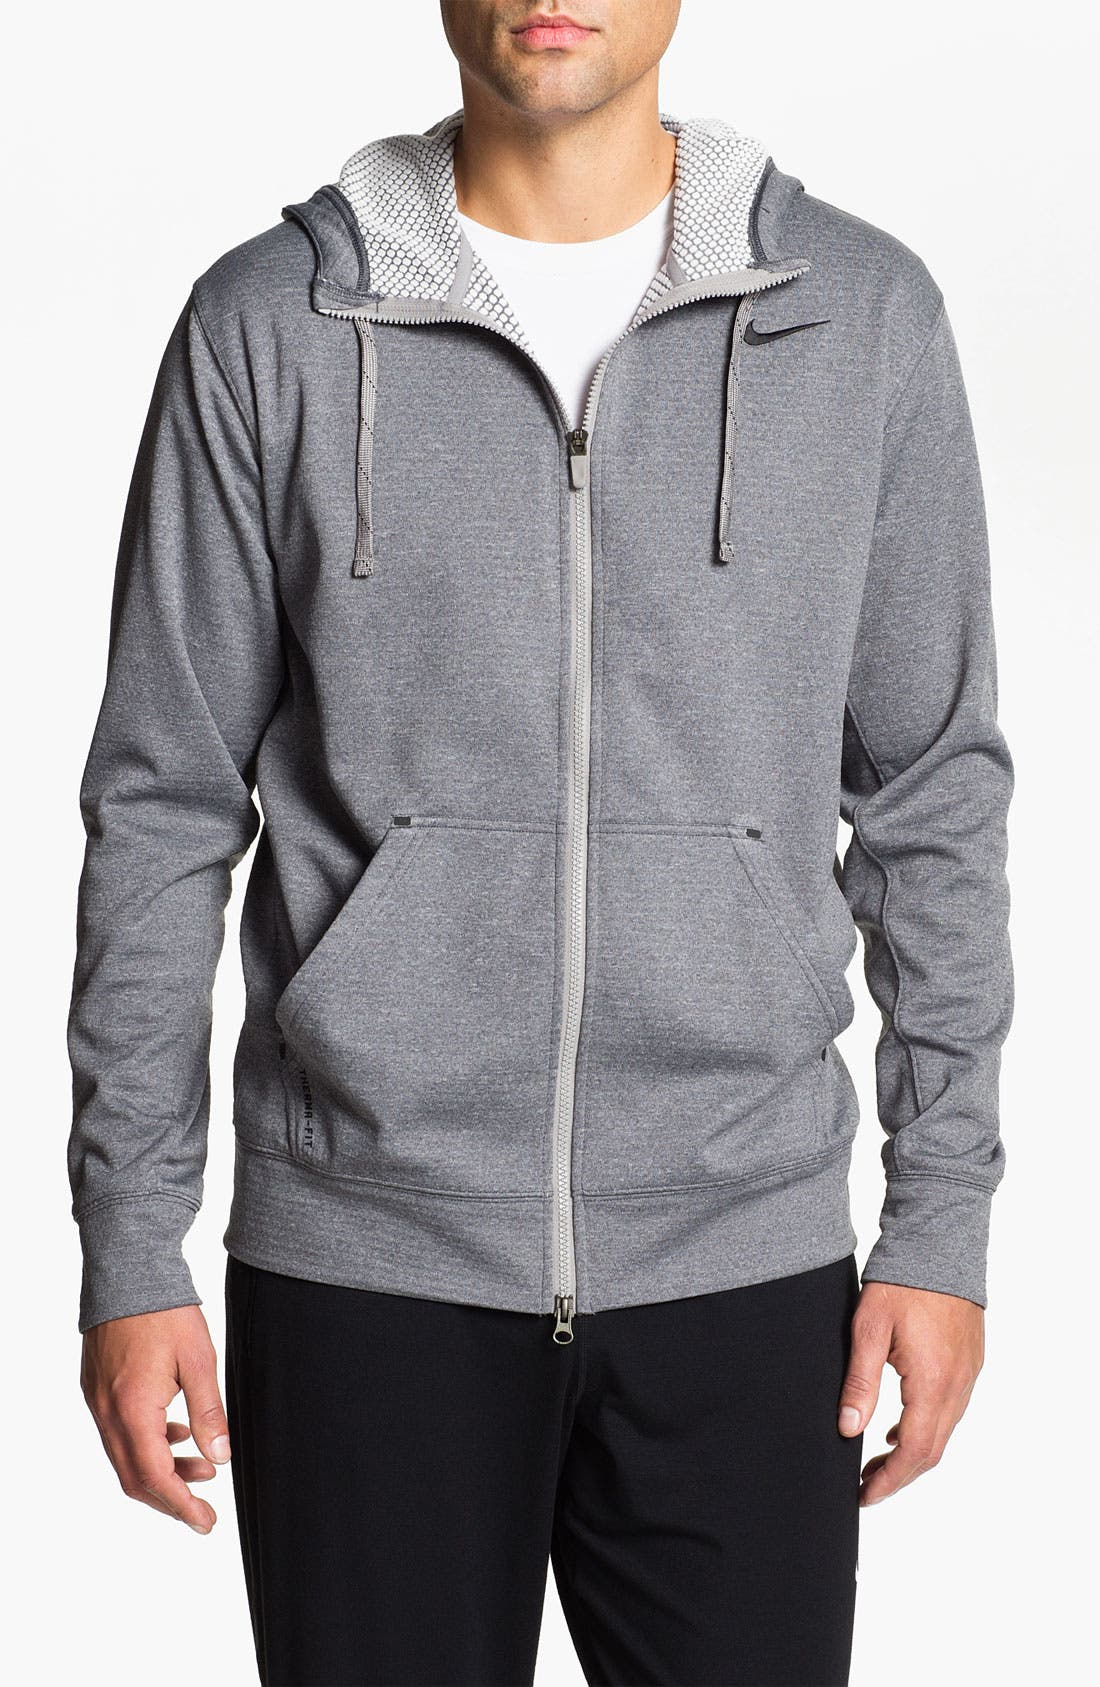 Alternate Image 1 Selected - Nike 'Sphere' Zip Hoodie